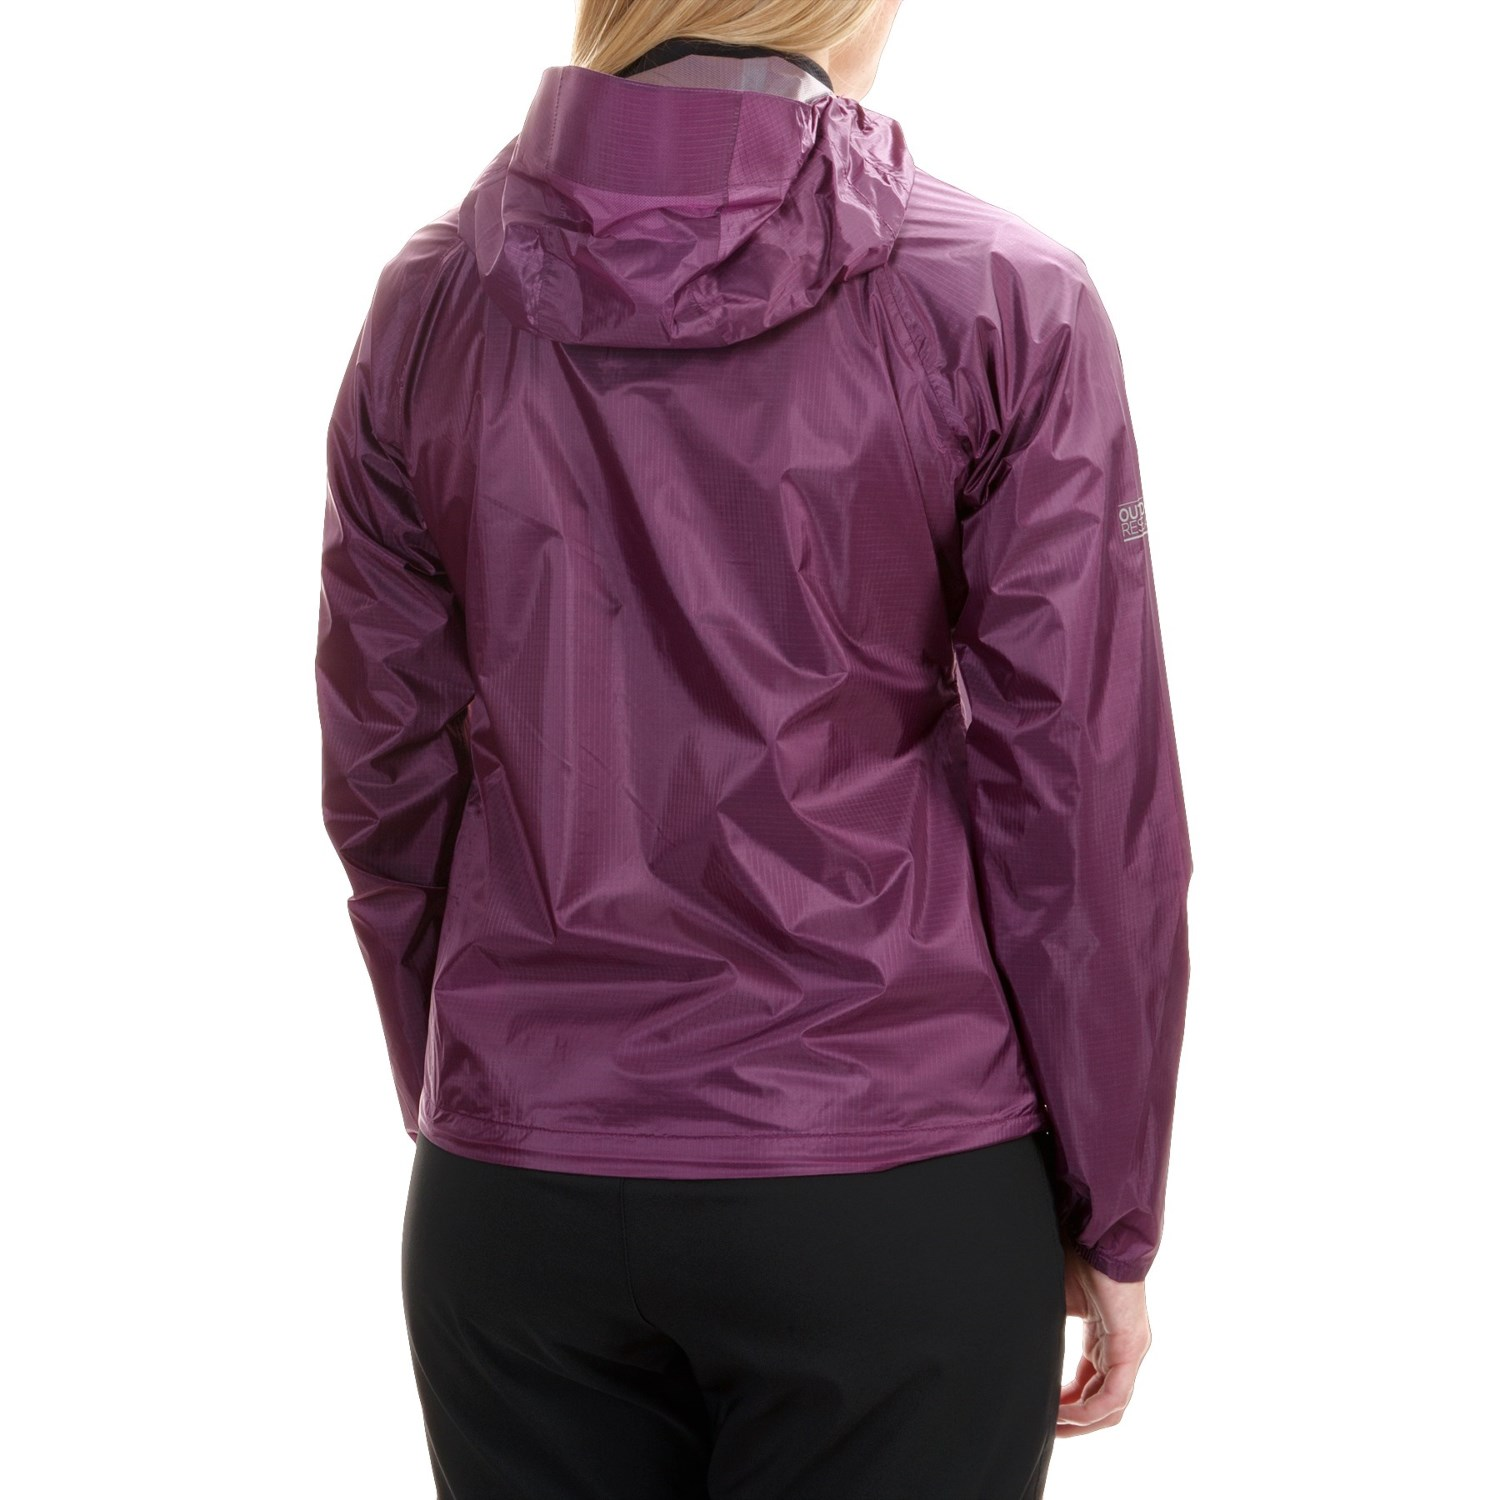 Outdoor Research Helium Ii Jacket For Women 5114u Save 49